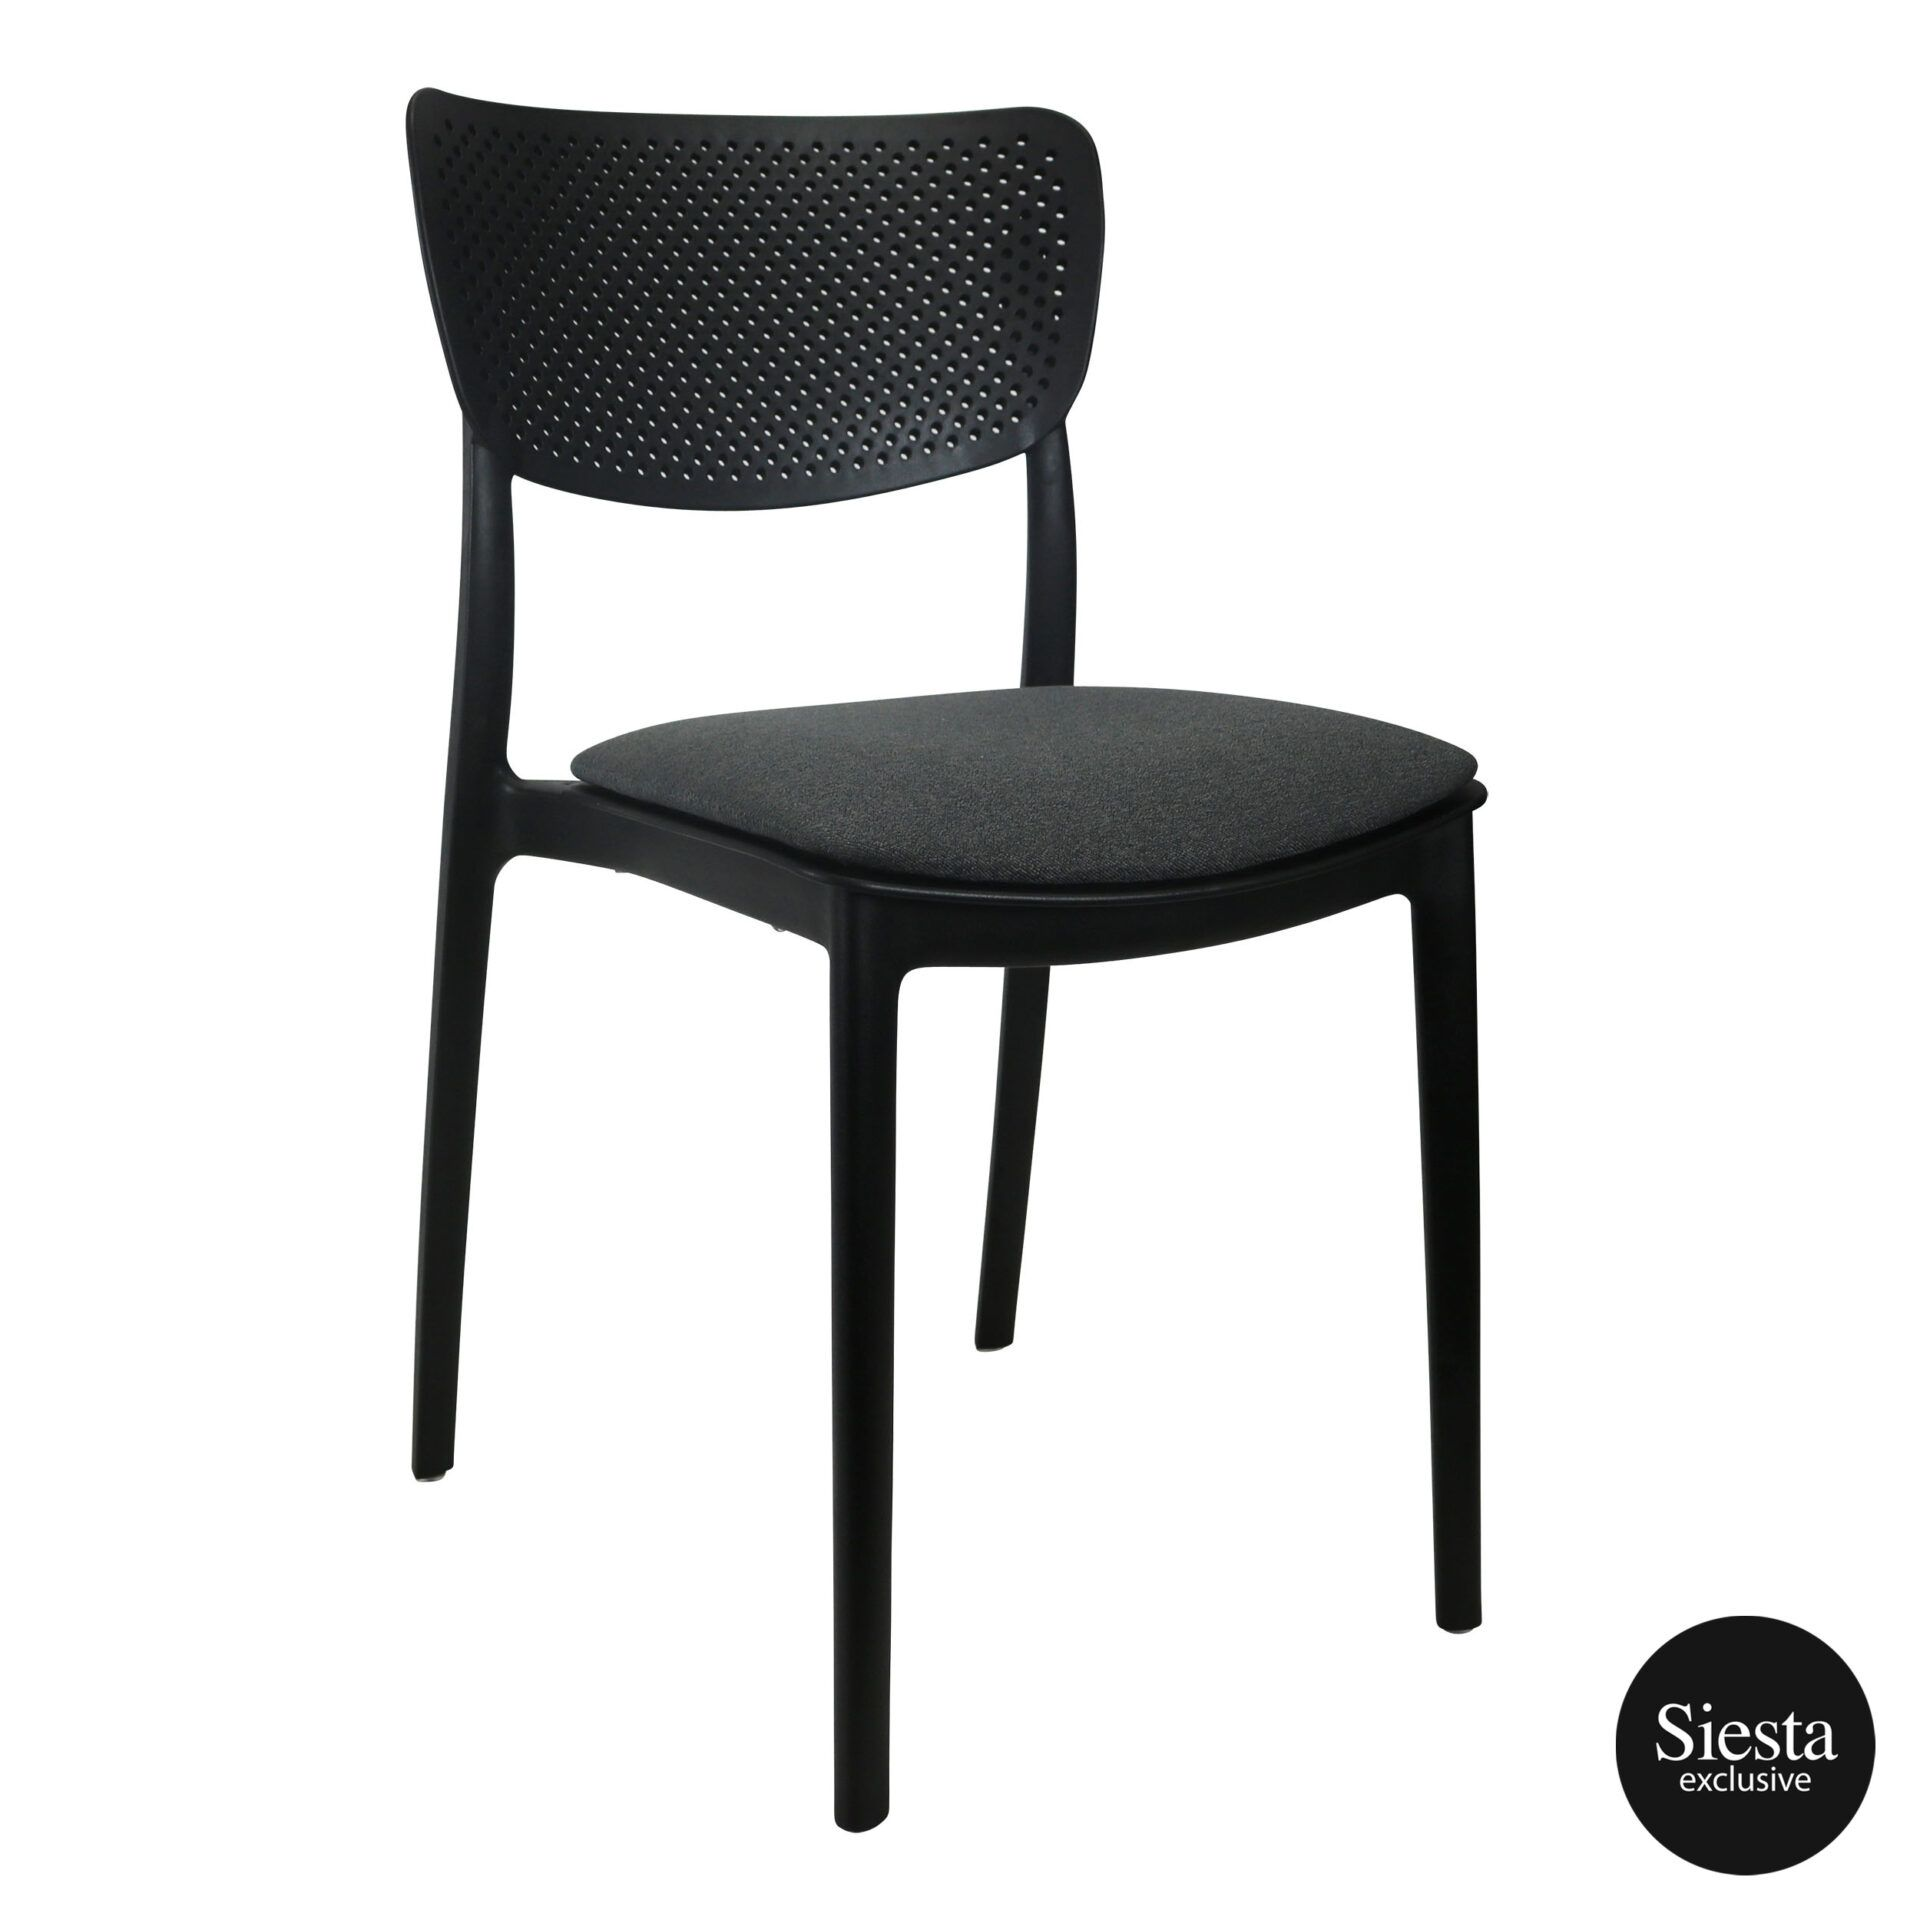 lucy chair black c6a